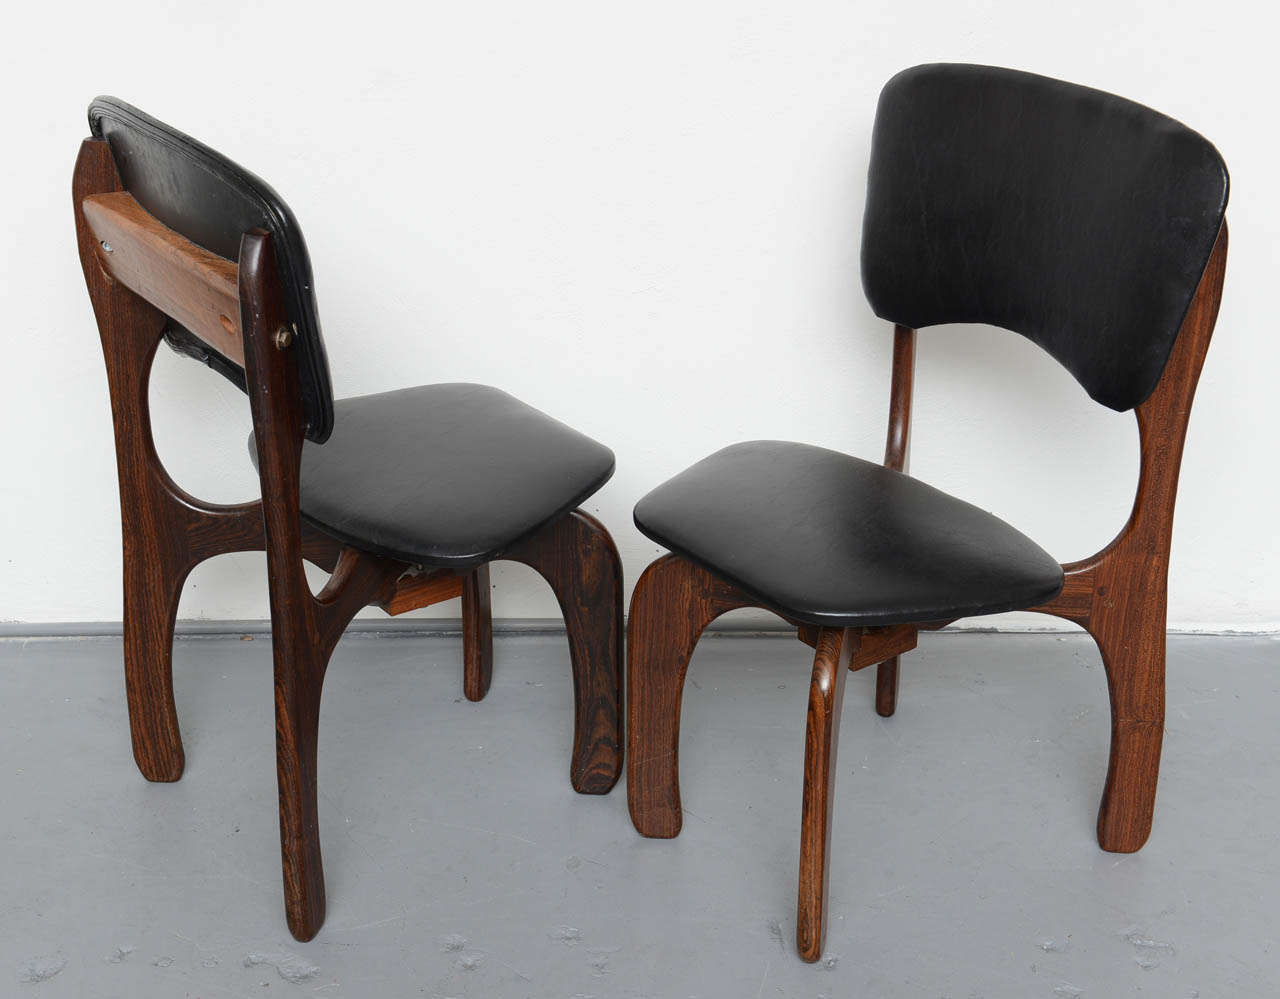 1970s Rosewood Chairs by Don Shoemaker, Mexico 8